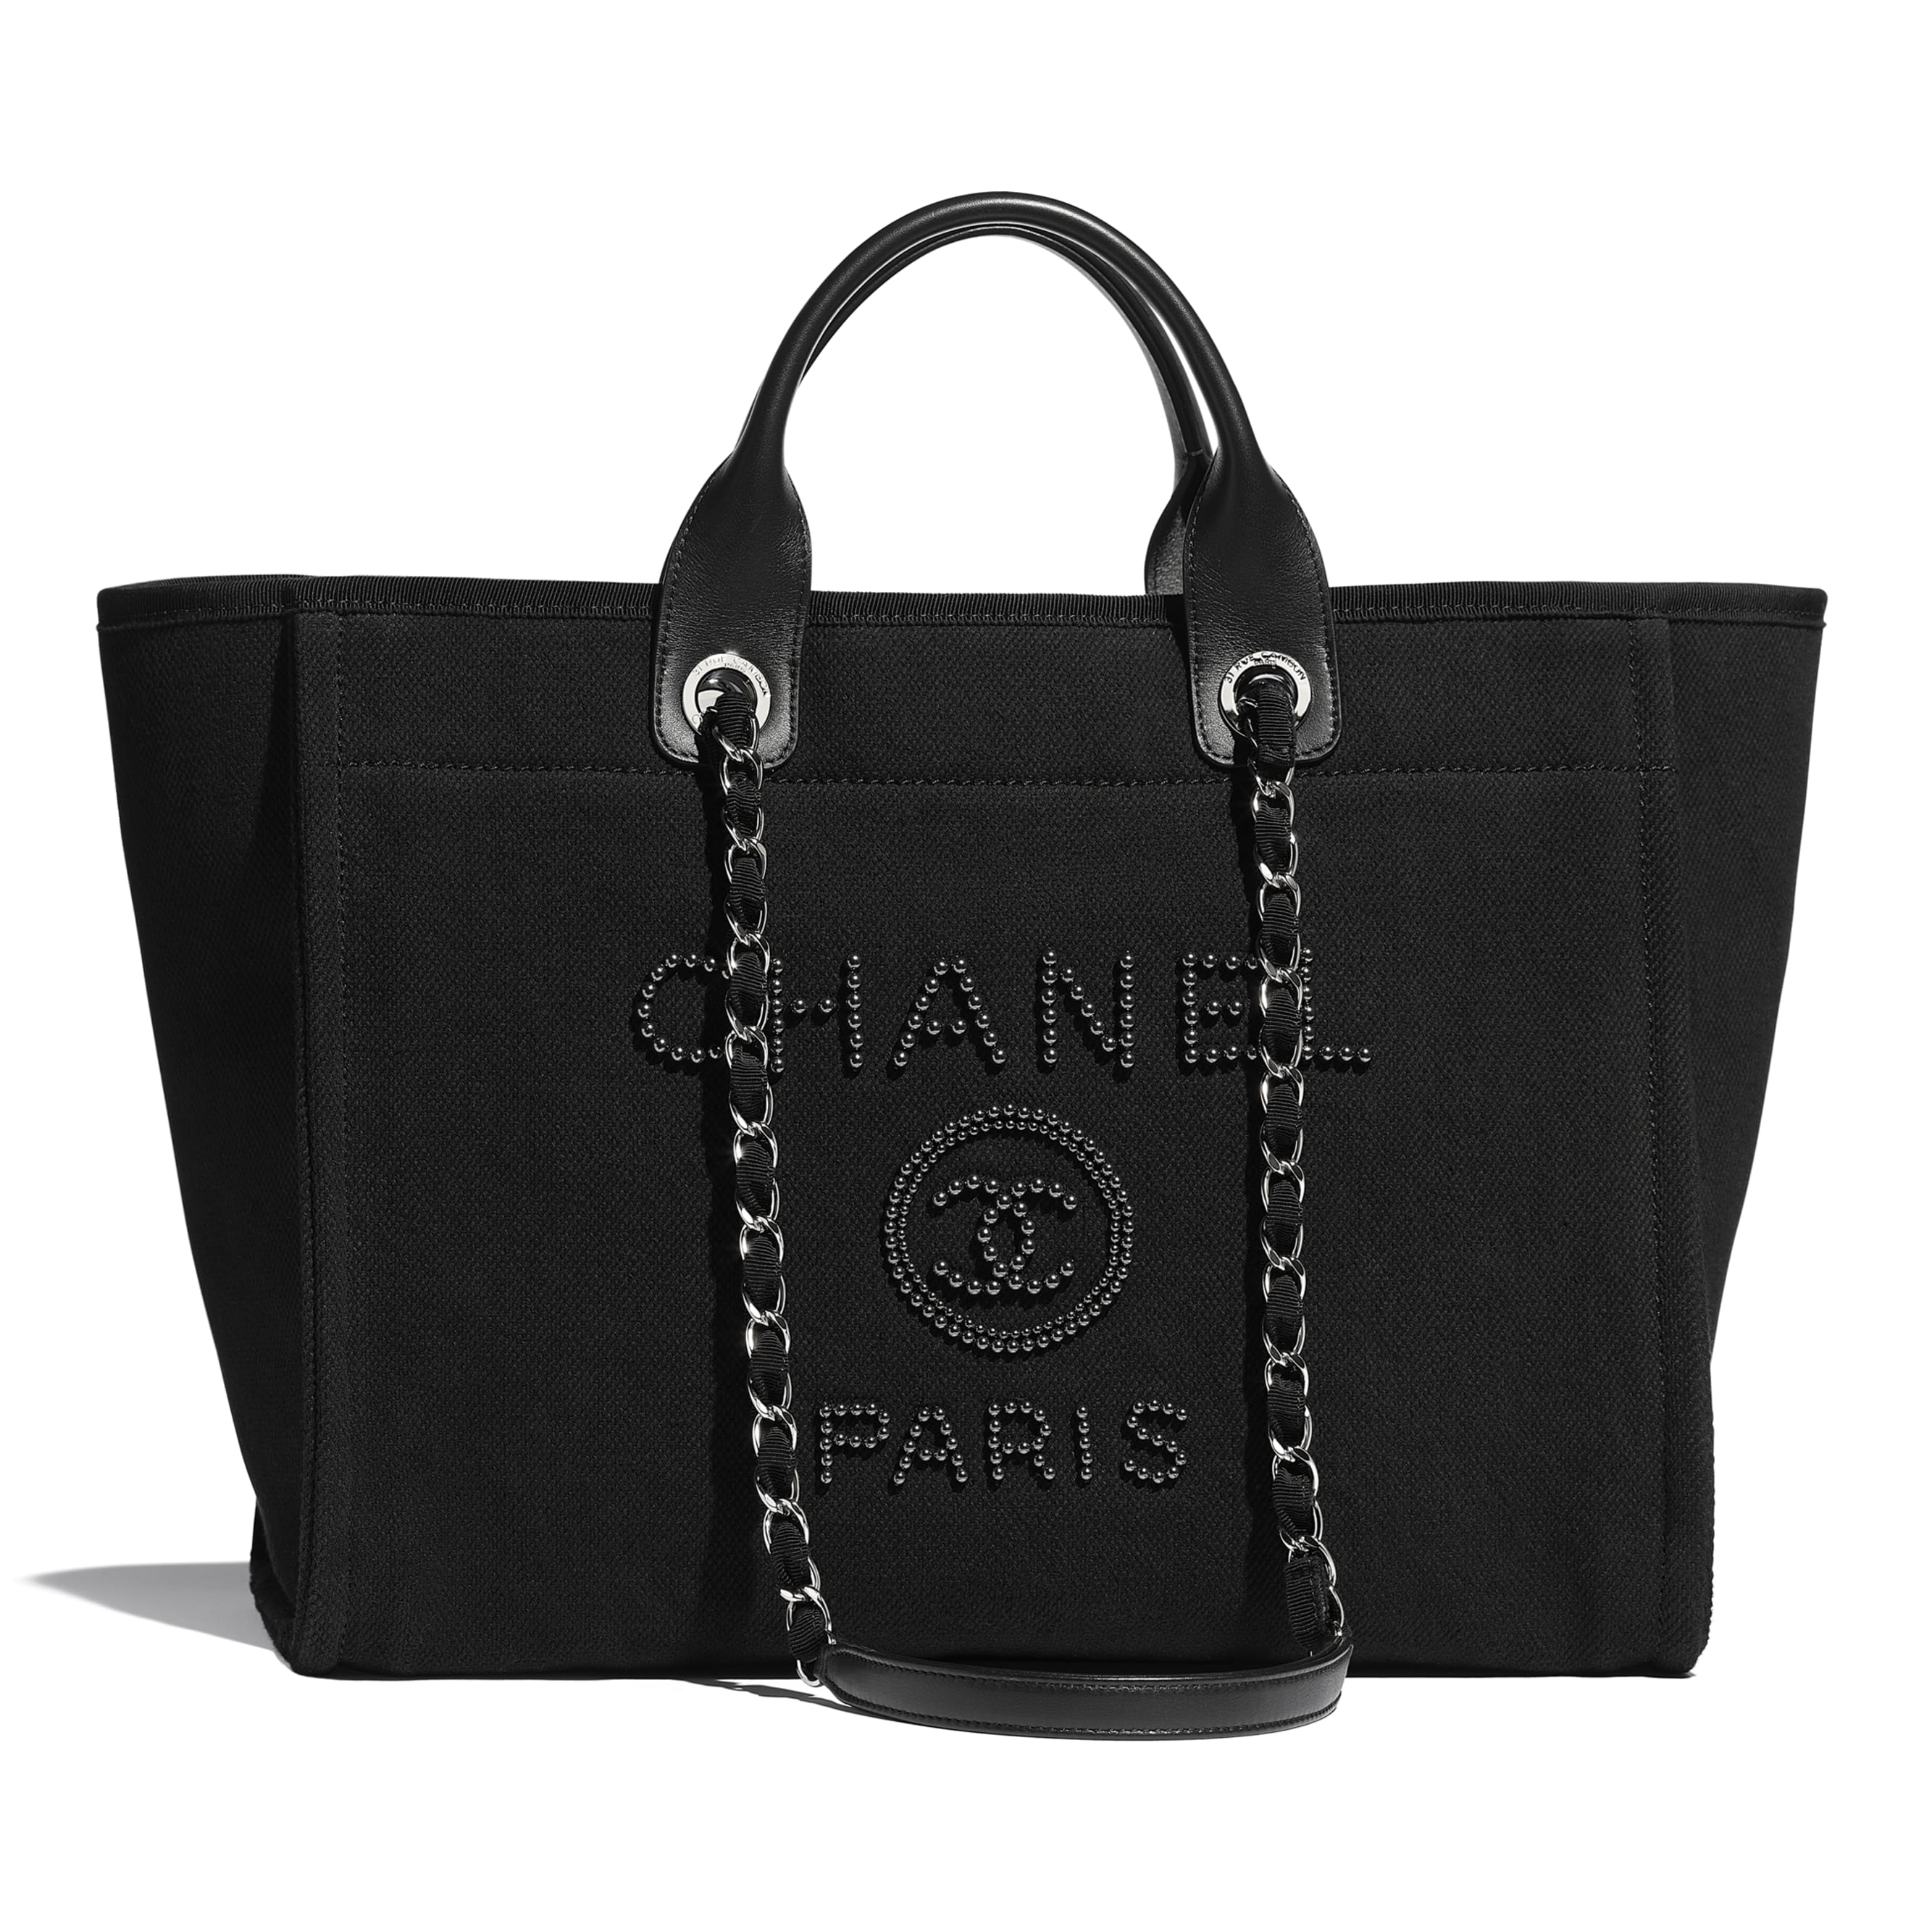 Shopping Bag - Black - Mixed Fibers, Imitation Pearls, Silver-Tone Metal - CHANEL - Default view - see standard sized version